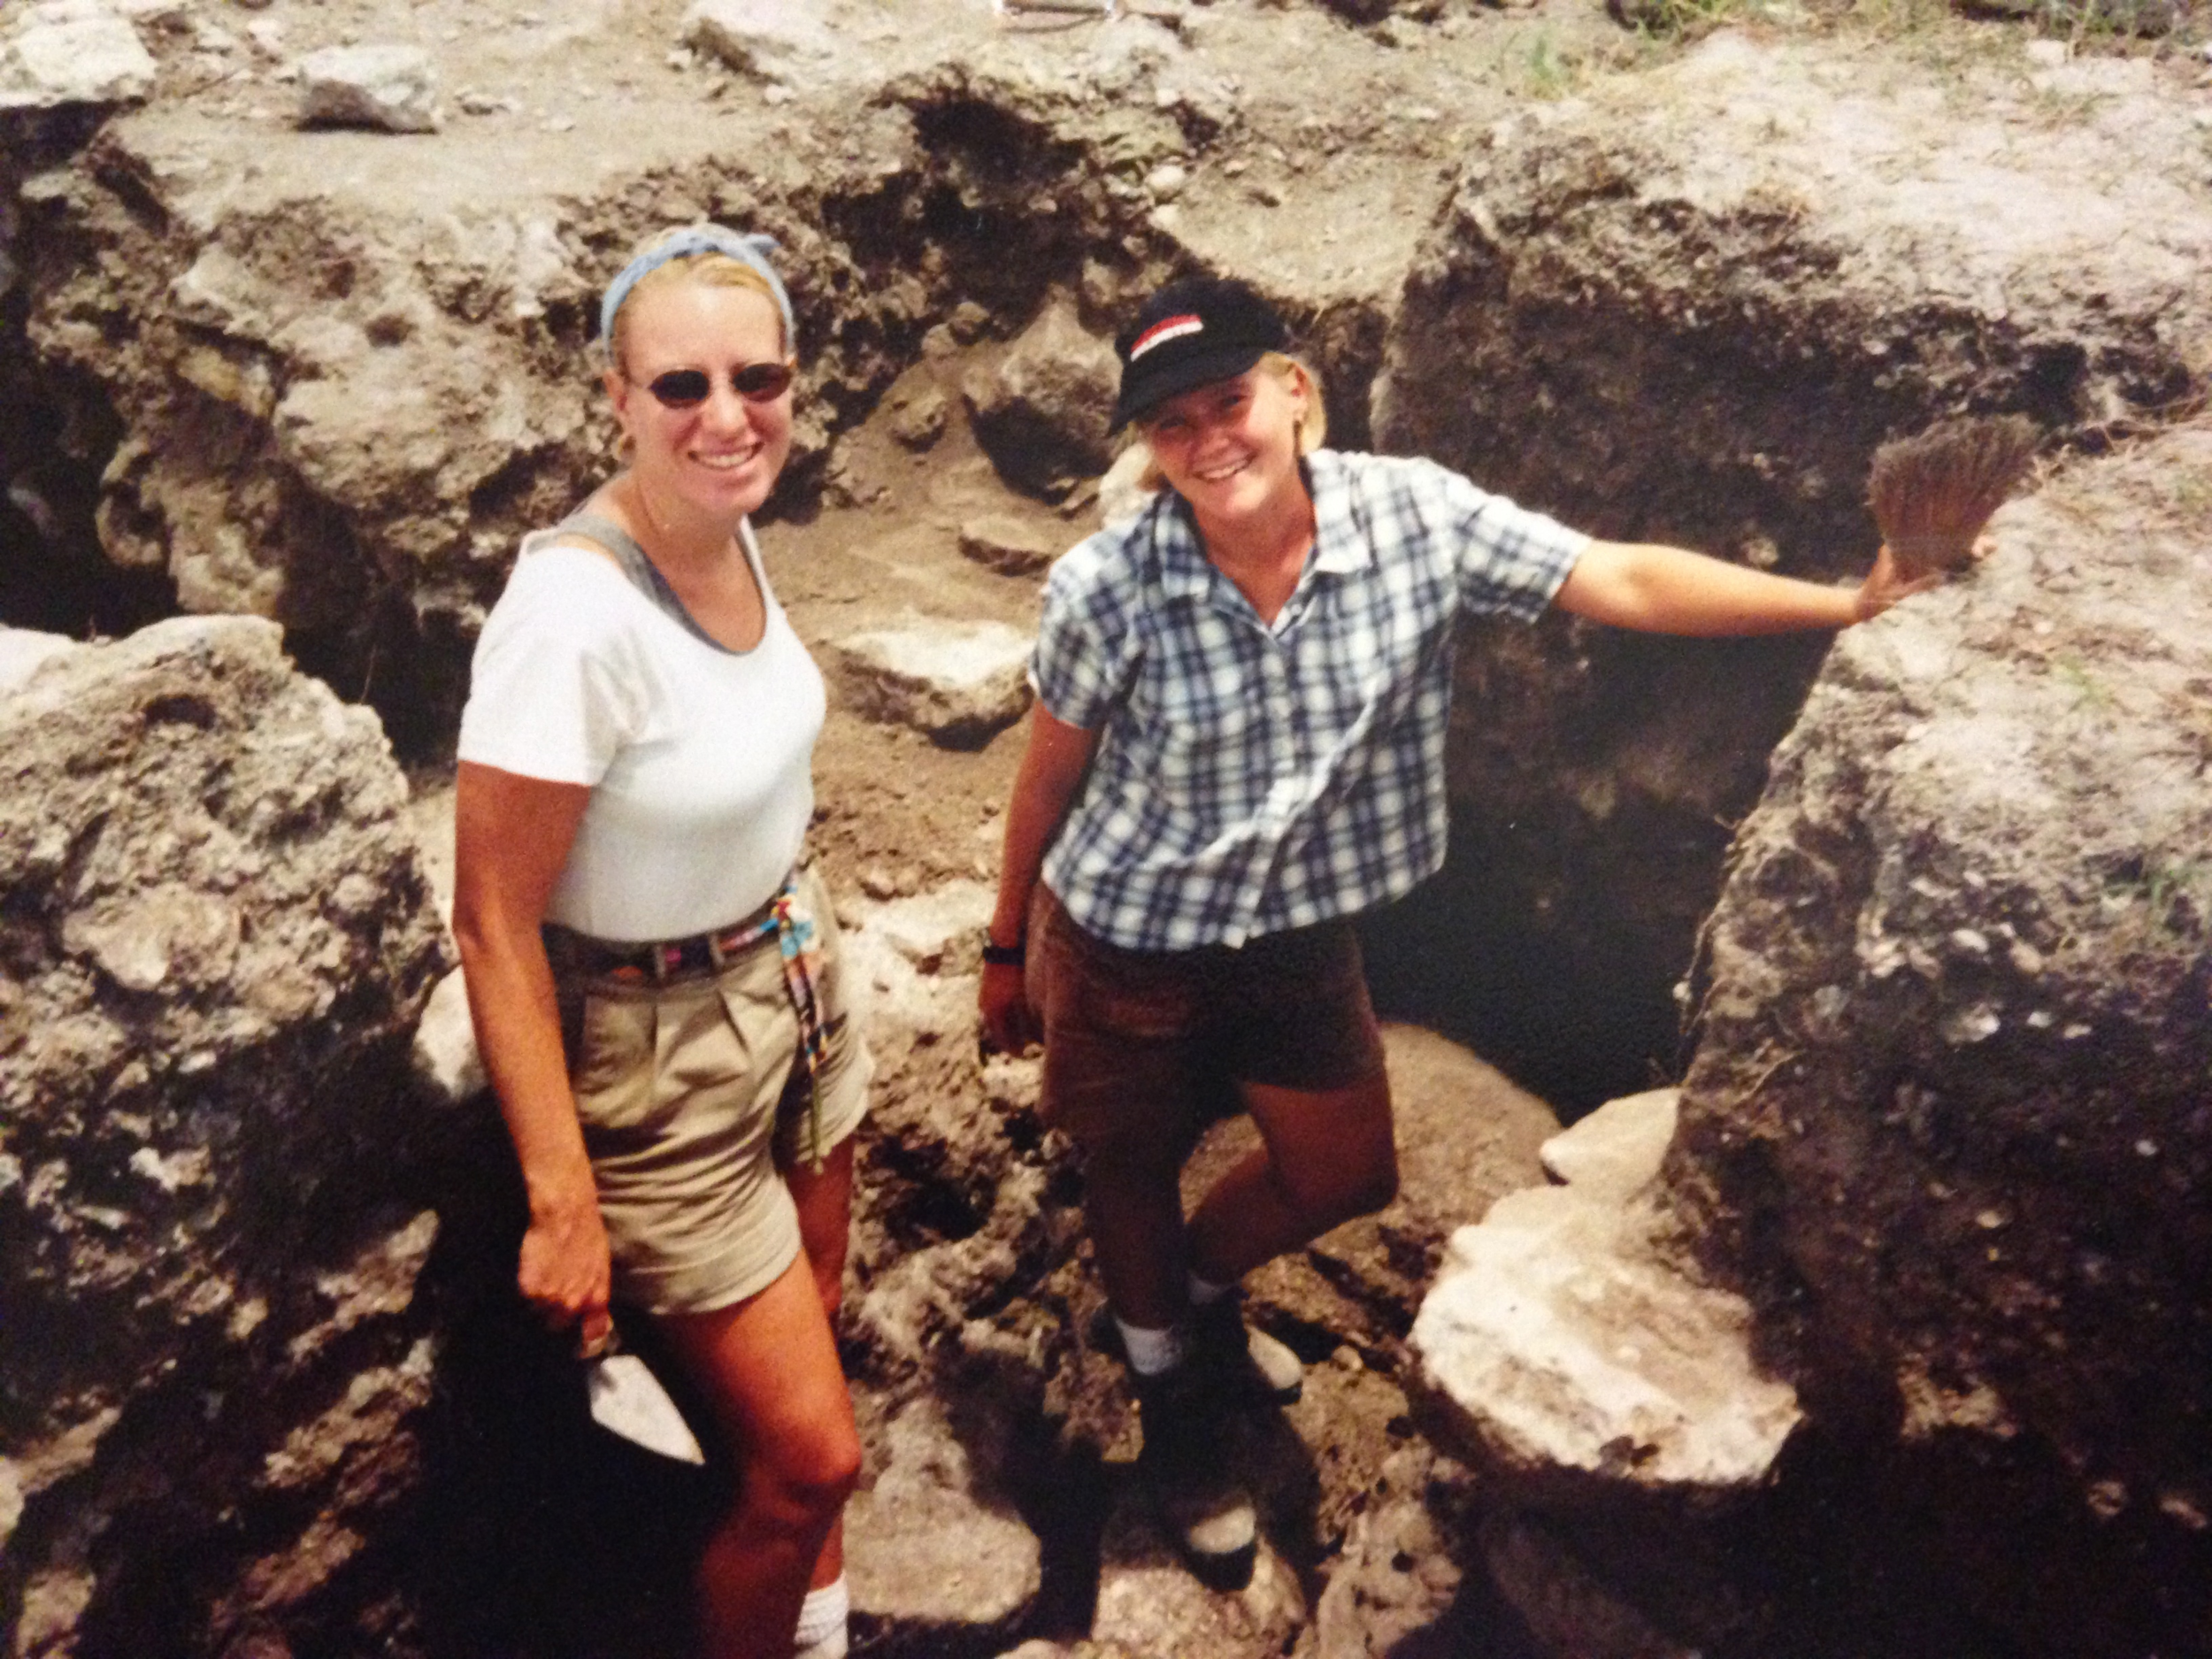 Me and a fellow doctoral student in an excavation unit at the Blue Creek Site in Northern Belize, Central America.